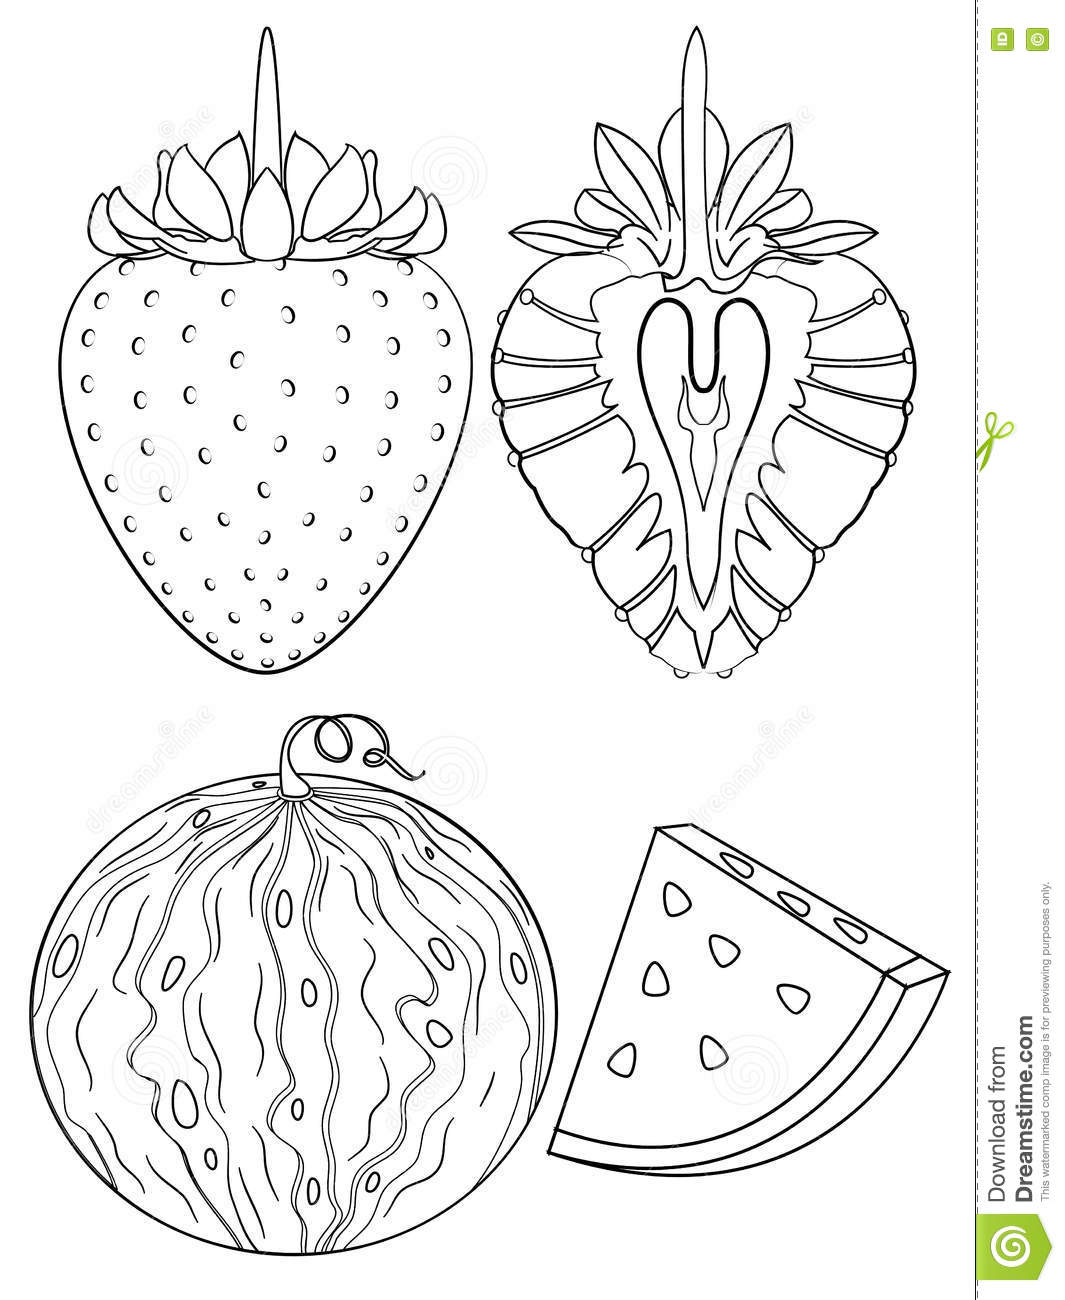 Strawberry And Watermelon Coloring Page Stock Photo - Image: 77236052